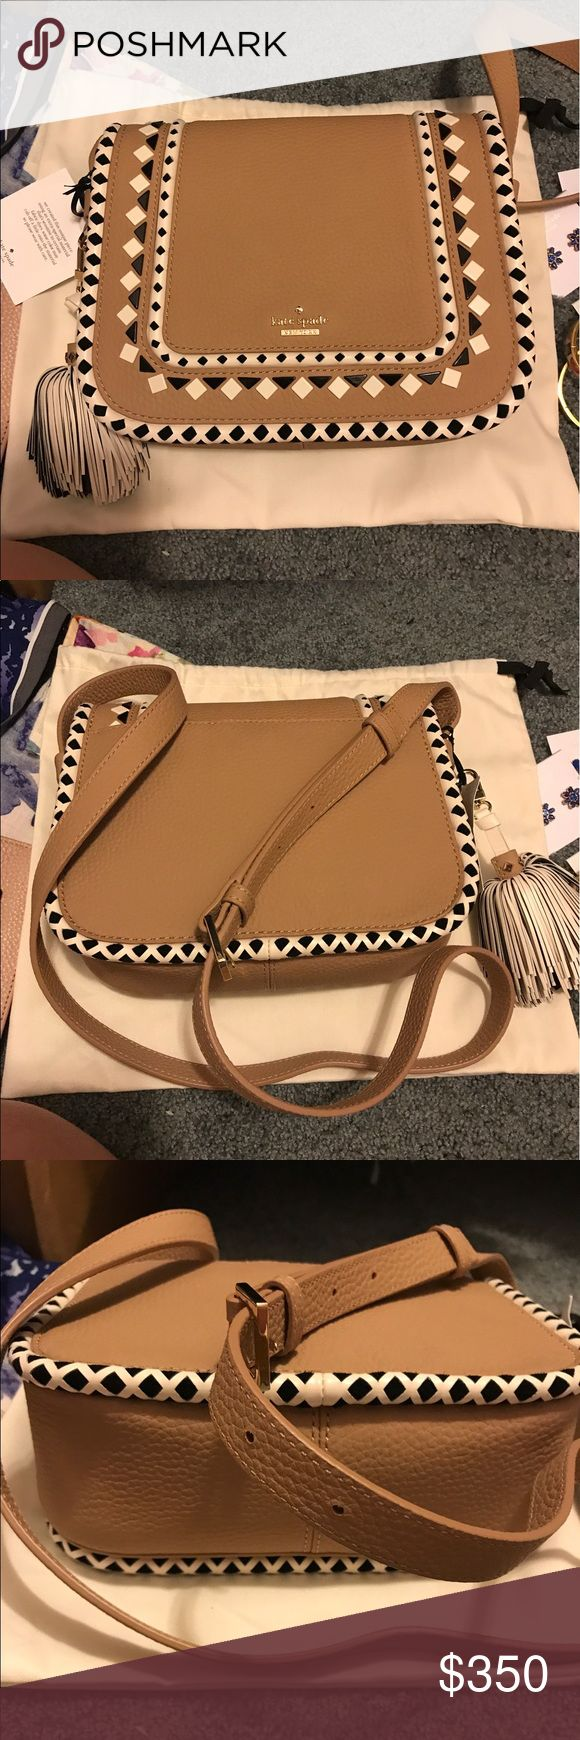 Kate spade cross body purse BRAND NEW WITH TAGS. Kate spade cross body purse in perfect condition. Comes with care card and dust bag. Never used. Will do 280 with ️️! kate spade Bags Crossbody Bags